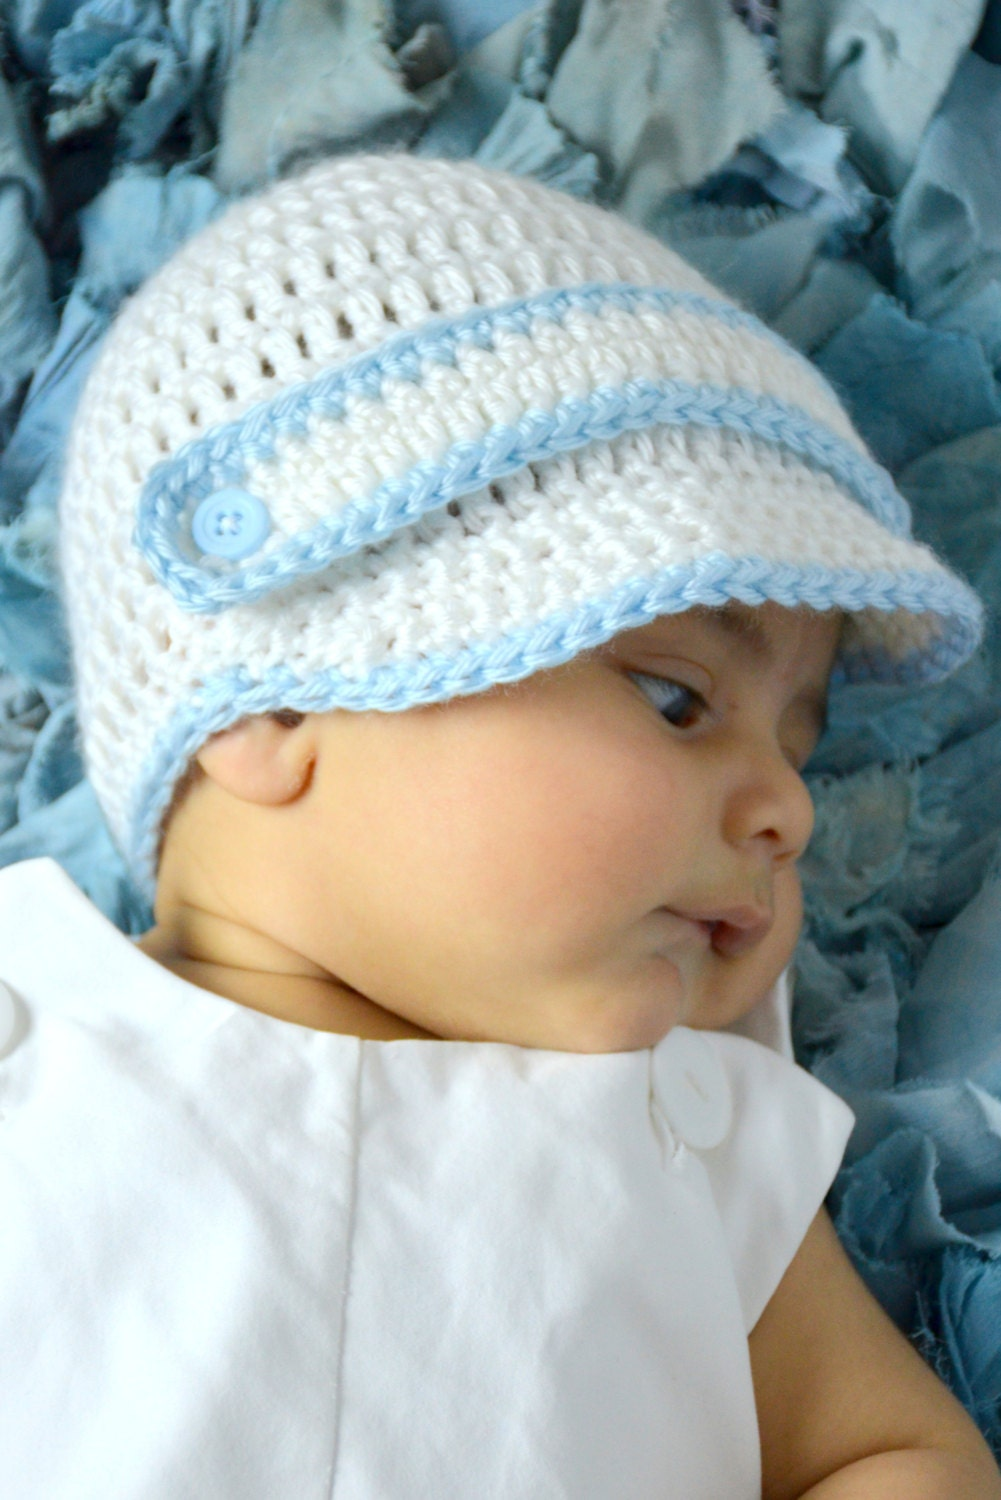 c94454e0176 Baby Crochet Hat Baby Boy Crochet Booties Baby Hat with